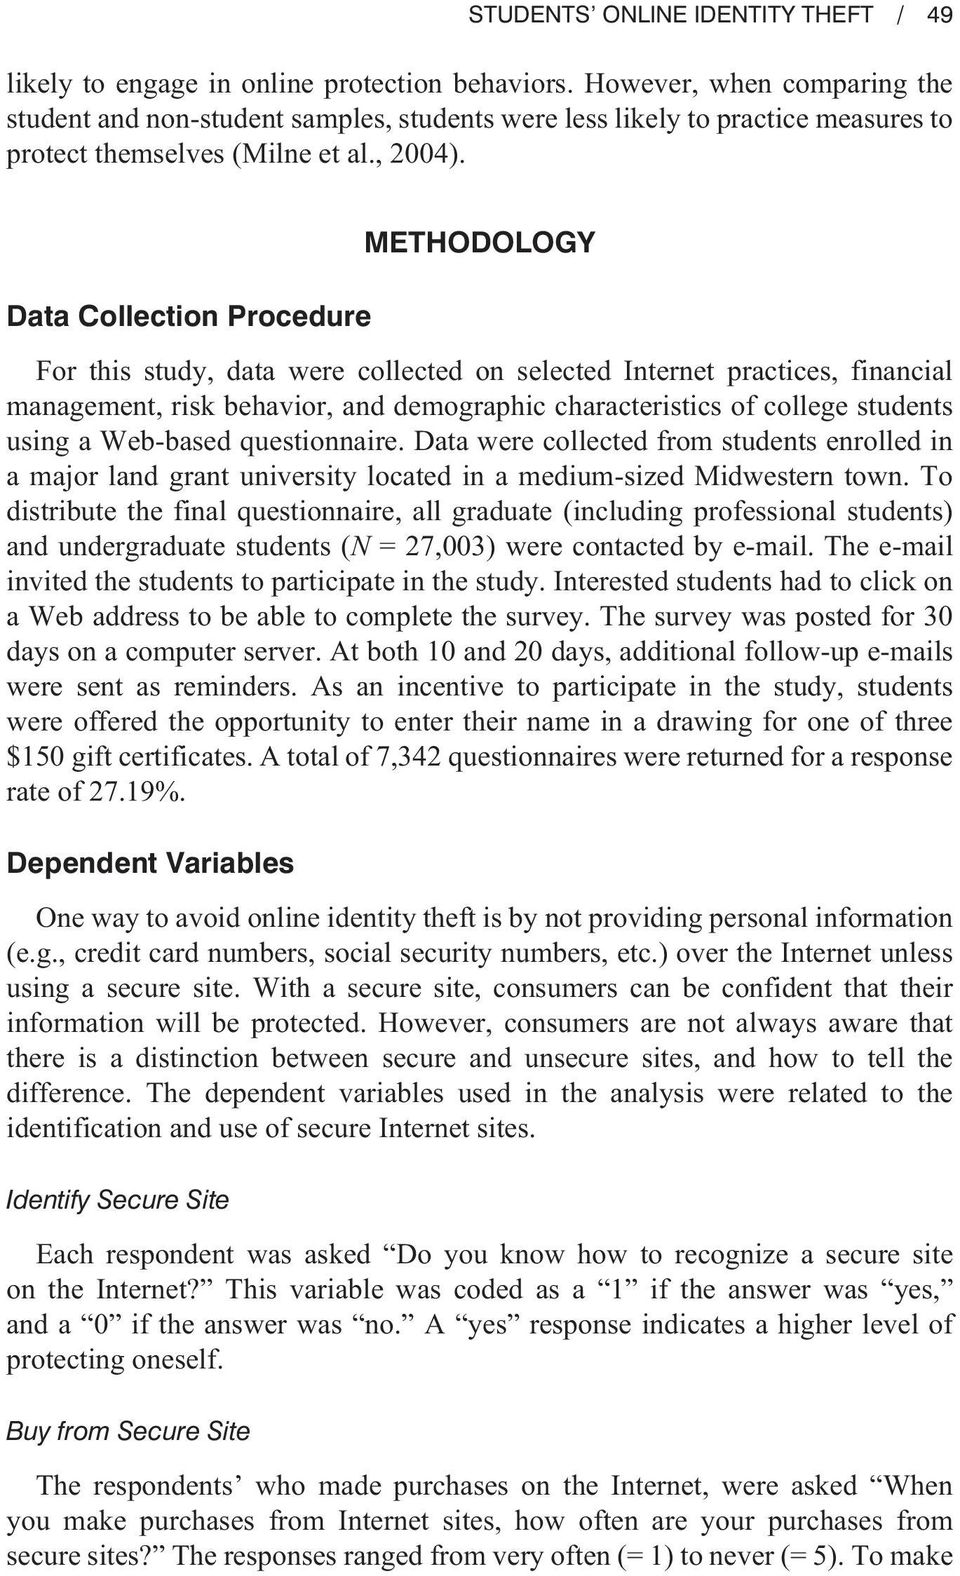 Data Collection Procedure METHODOLOGY For this study, data were collected on selected Internet practices, financial management, risk behavior, and demographic characteristics of college students